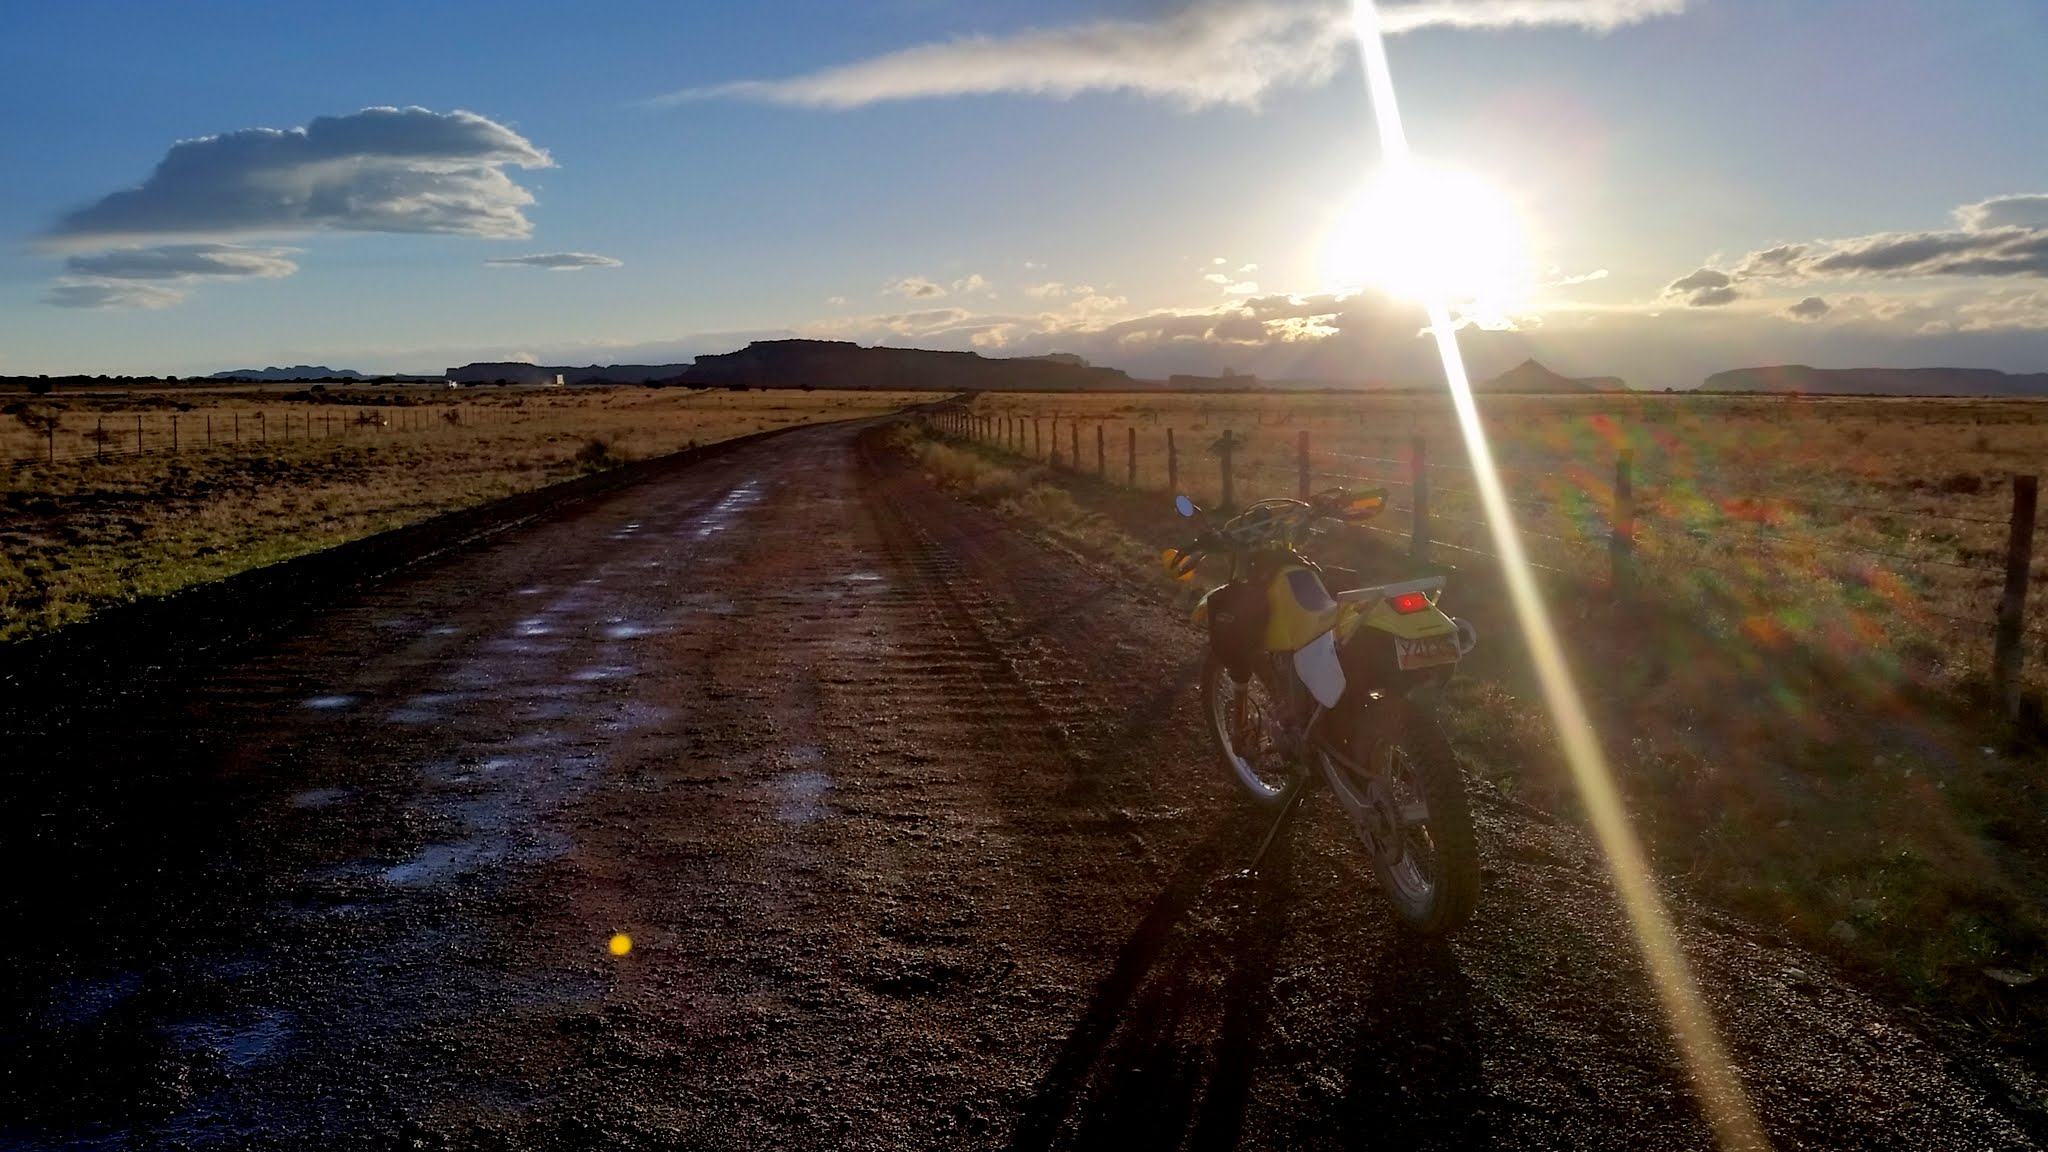 Photo: Riding the gravel road on Sagebrush Bench